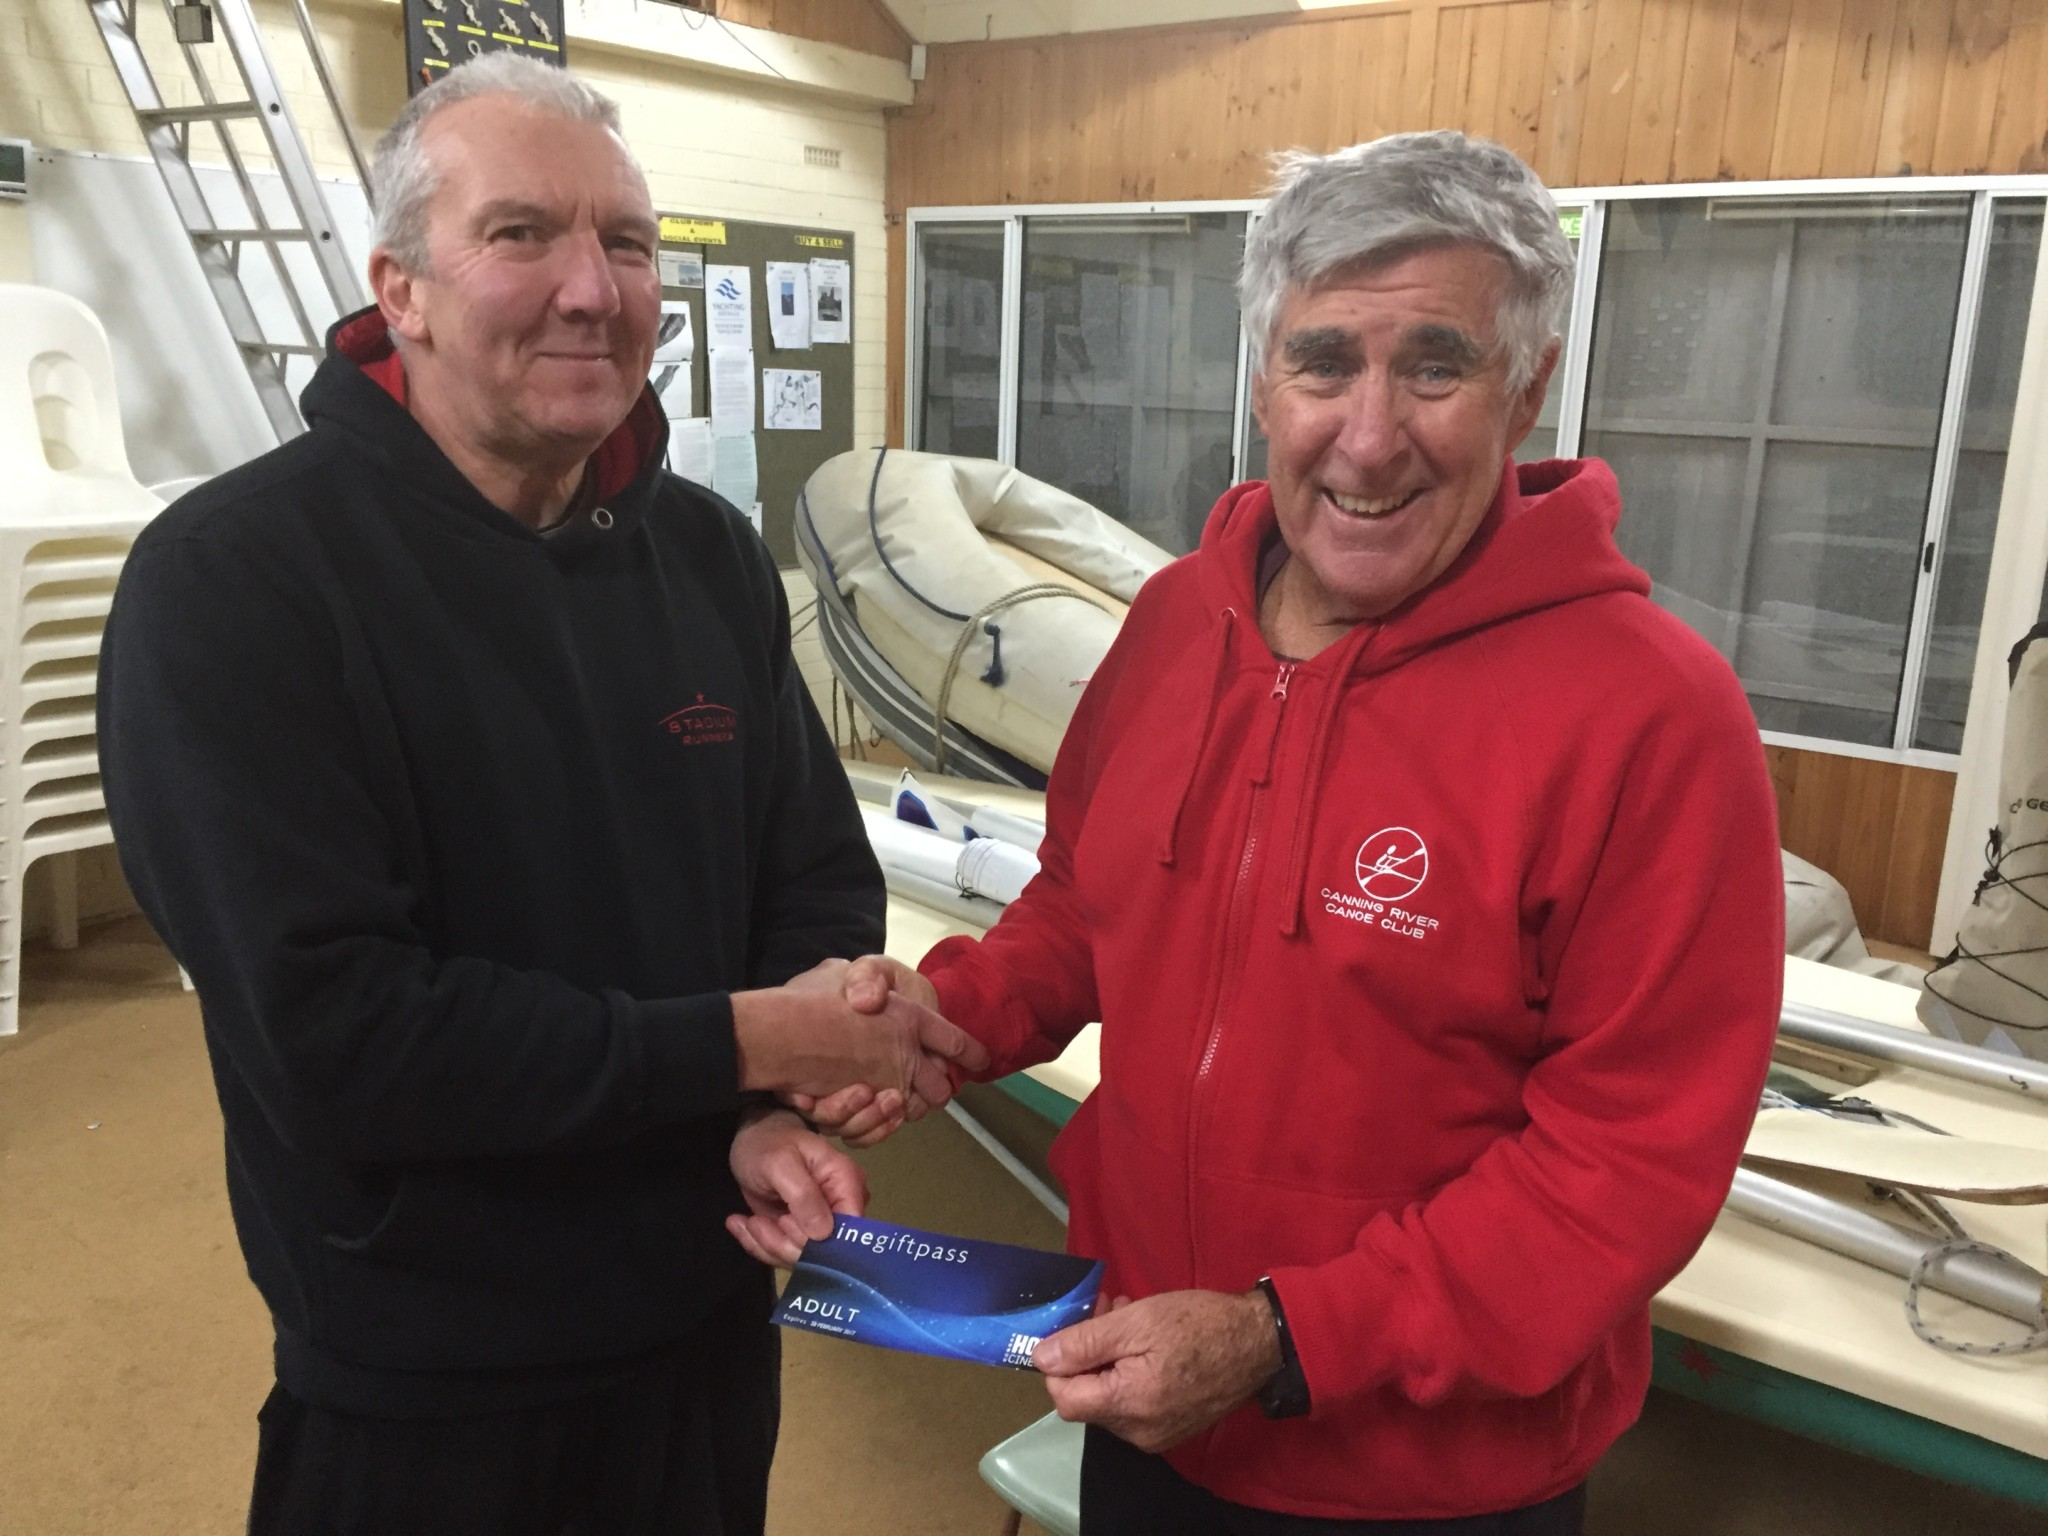 Tues 23rd August 2016 : Malcolm Goodall presents Joe with his movie voucher in tonight's photo.